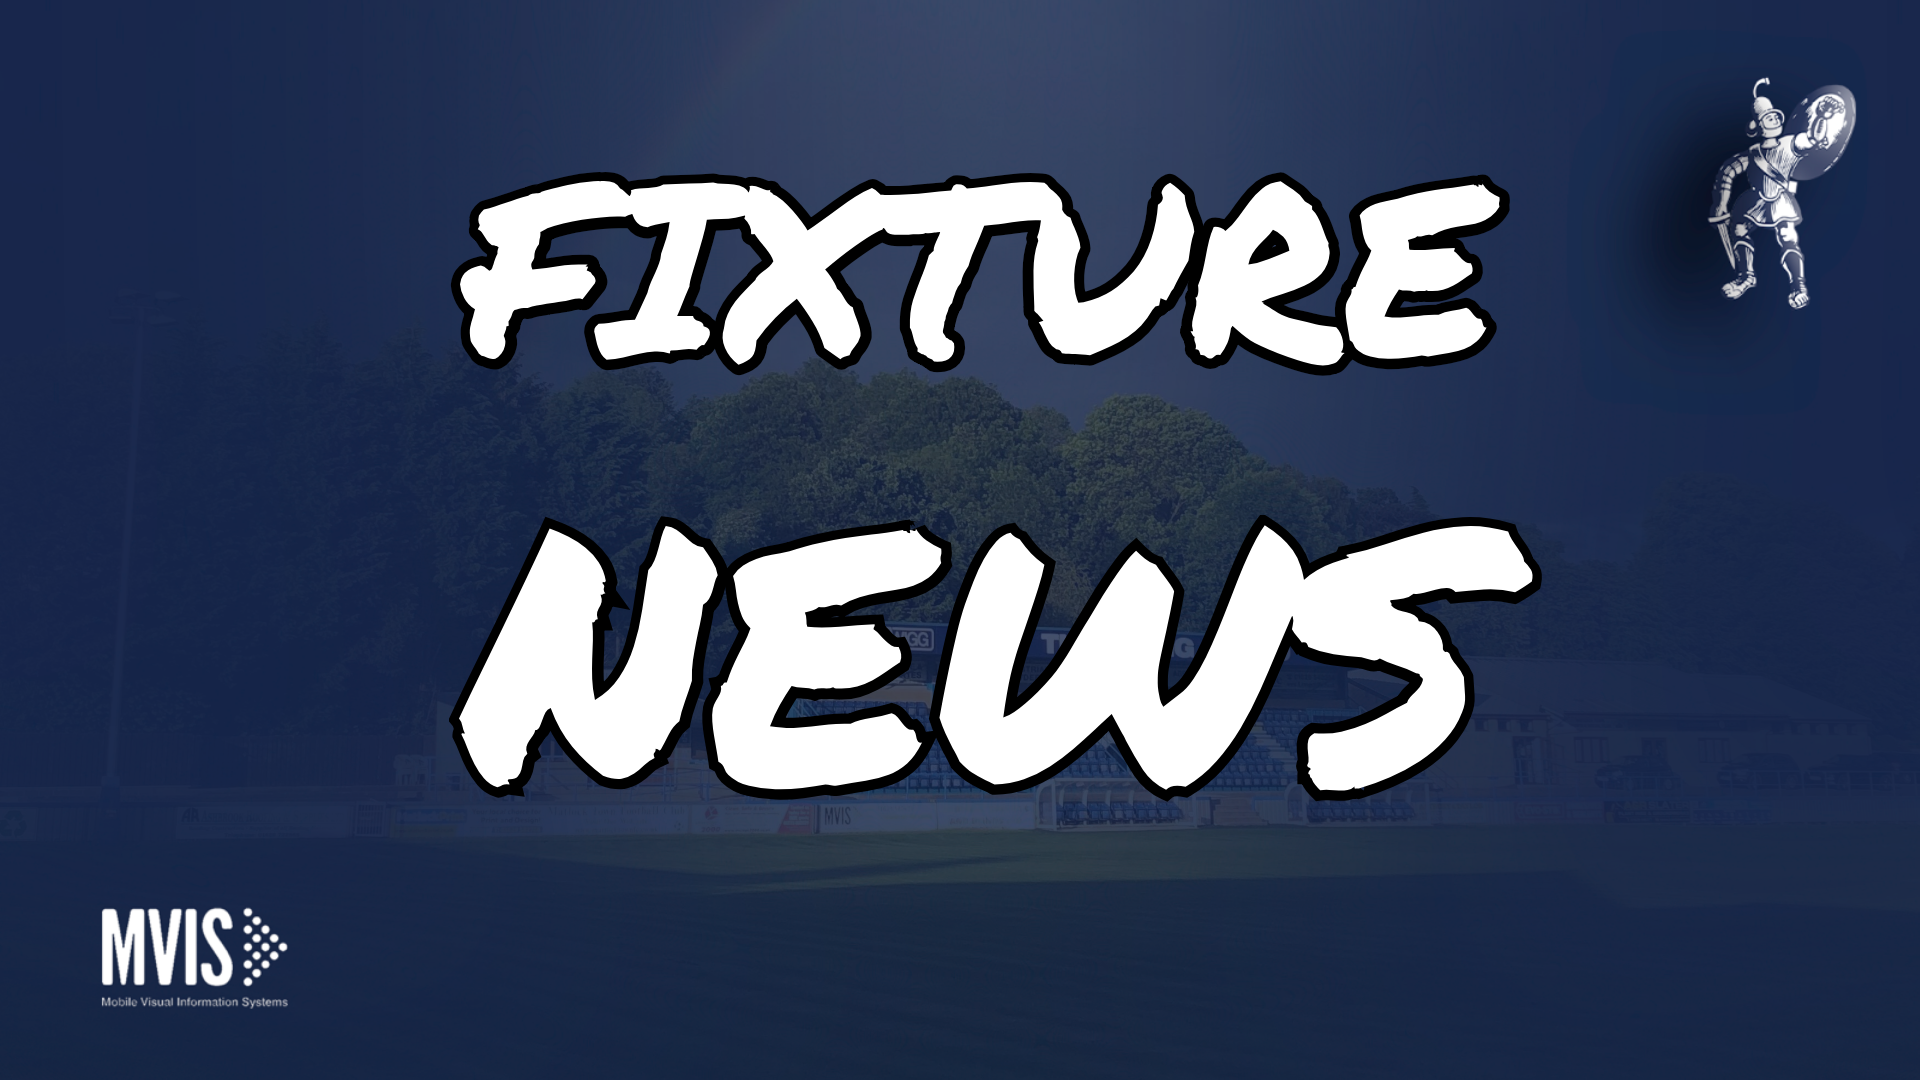 FIXTURE NEWS | MTFC Vs ATFC Given New Date